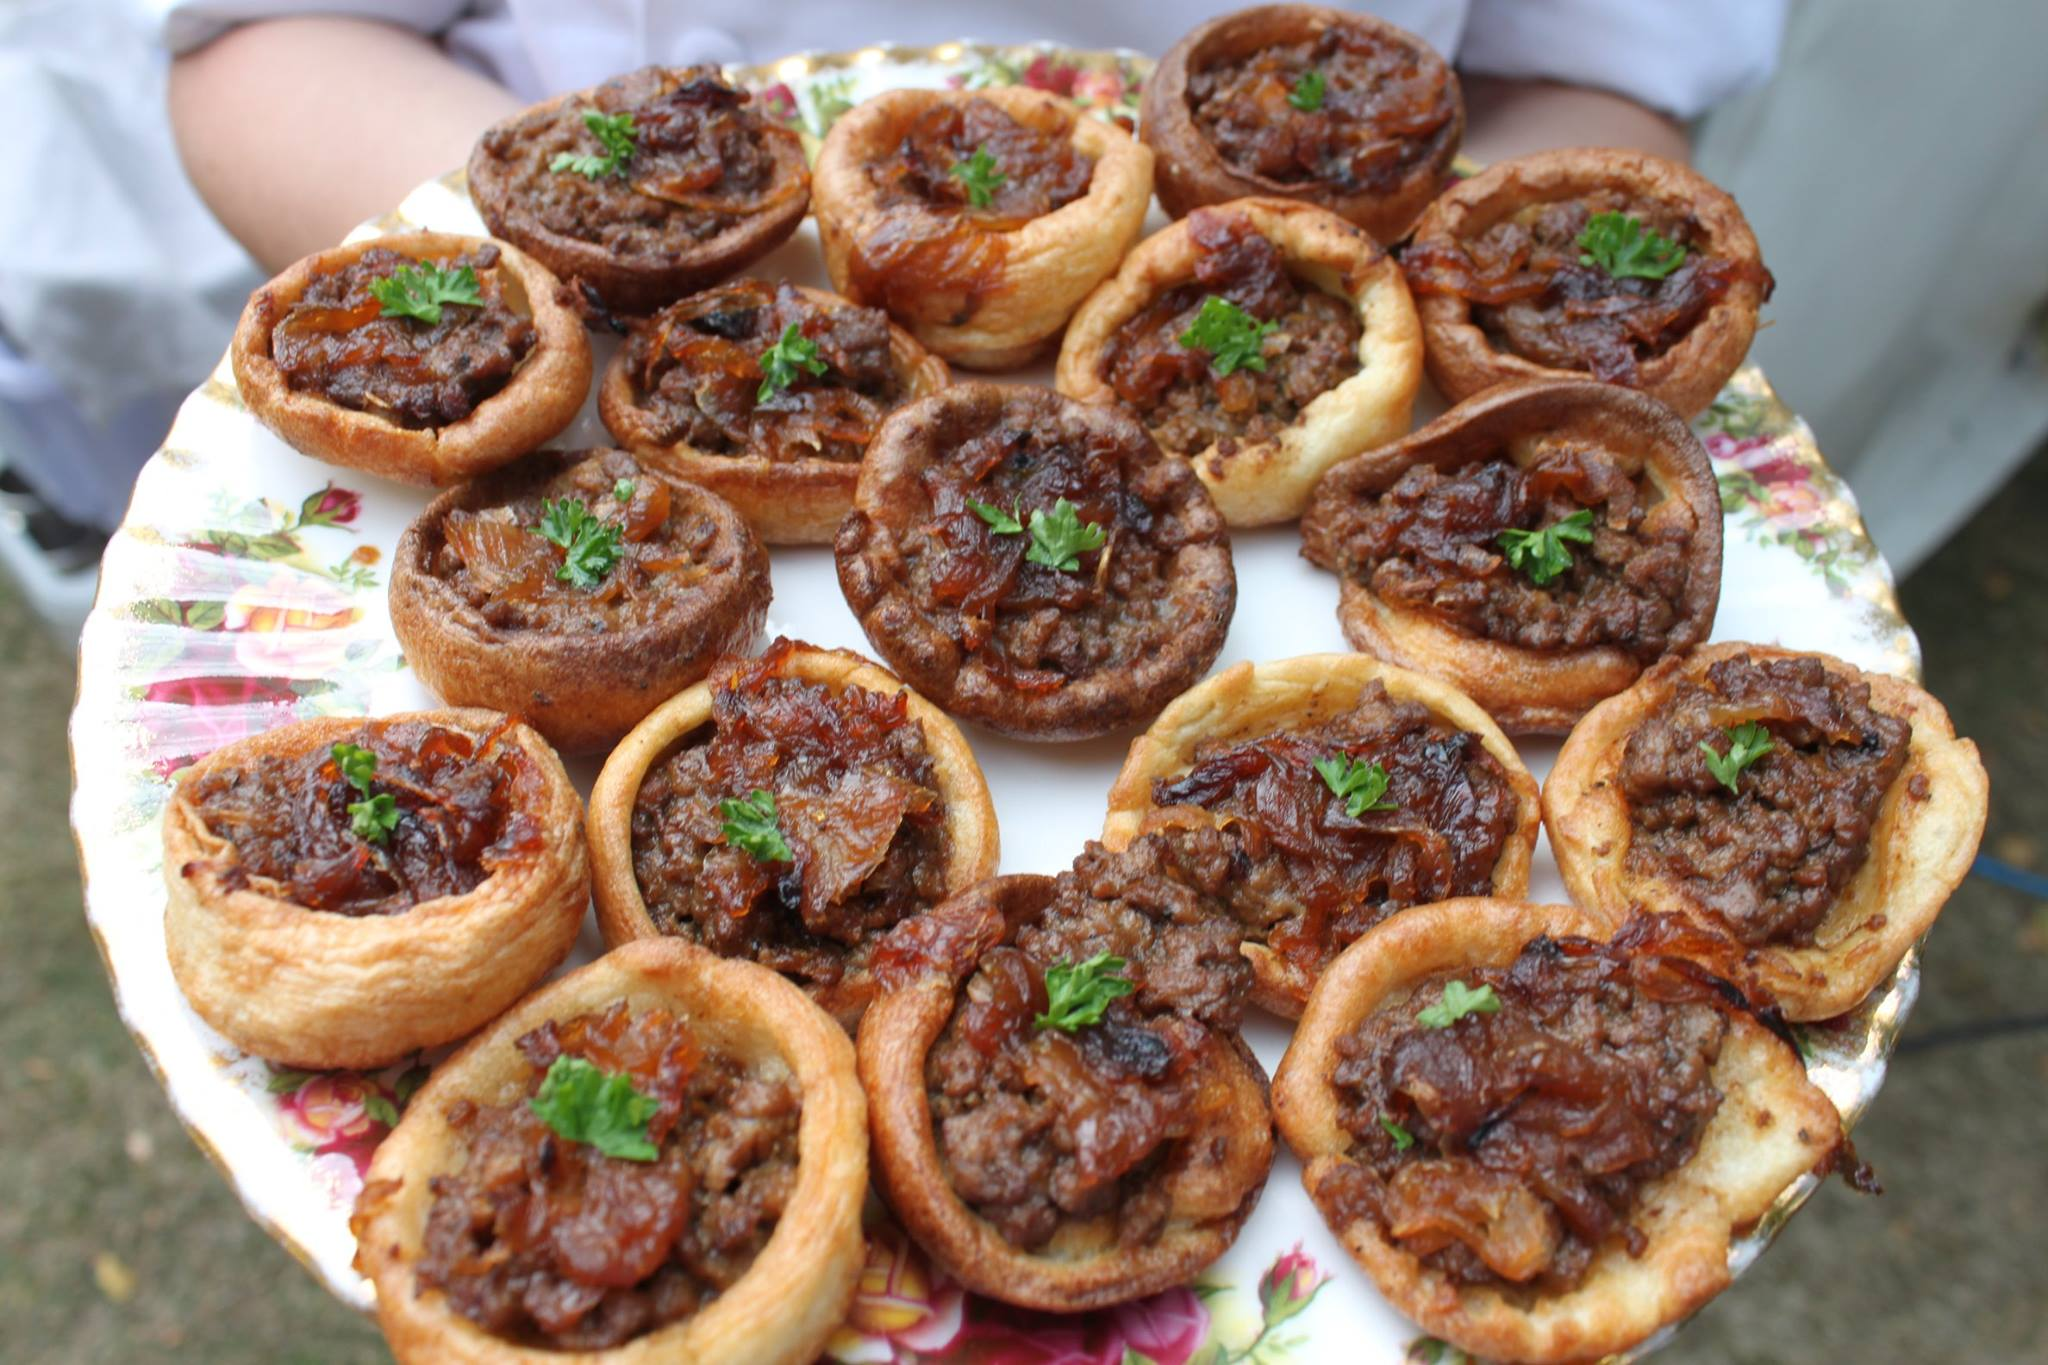 Homemade Yorkshire puddings filled with best minced beef and topped with caramelized onions canapes.